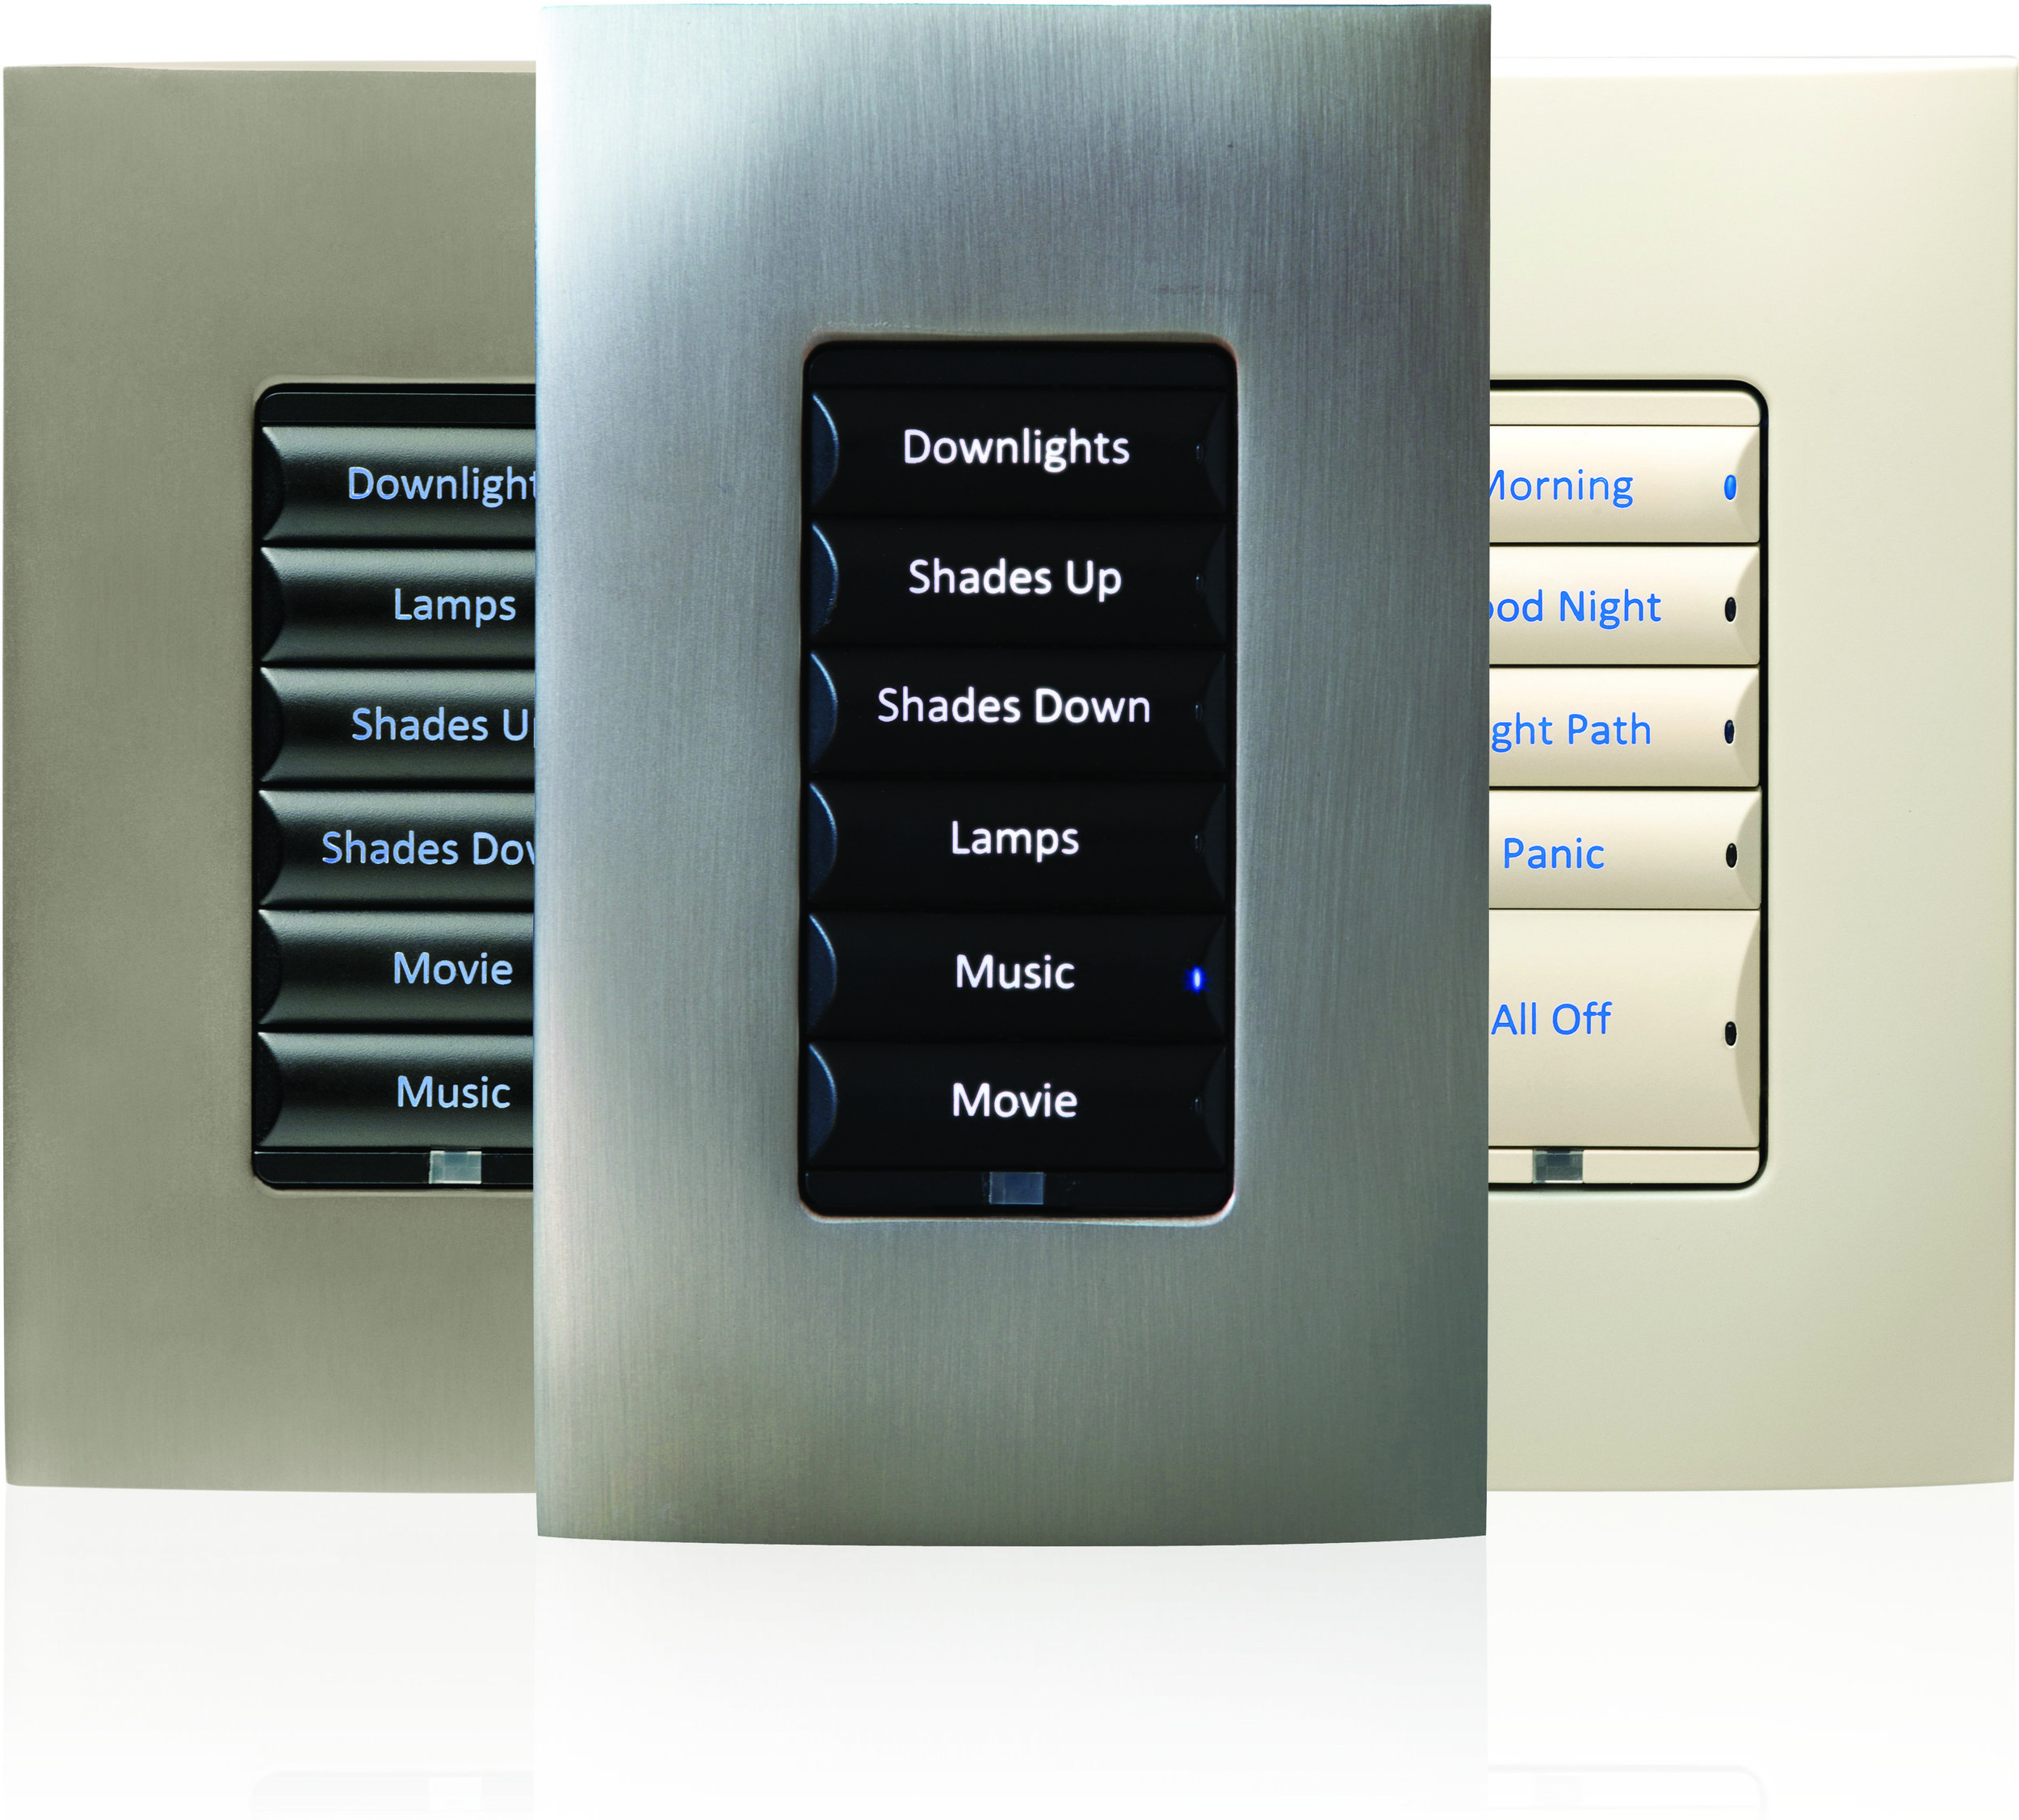 Control4 Dimmers - Control 4 offers smart dimmers, smart switches, keypad dimmers and even panalized lighting. Smart dimmers are easily retrofit-able in most homes to add a cleaner look with more control.